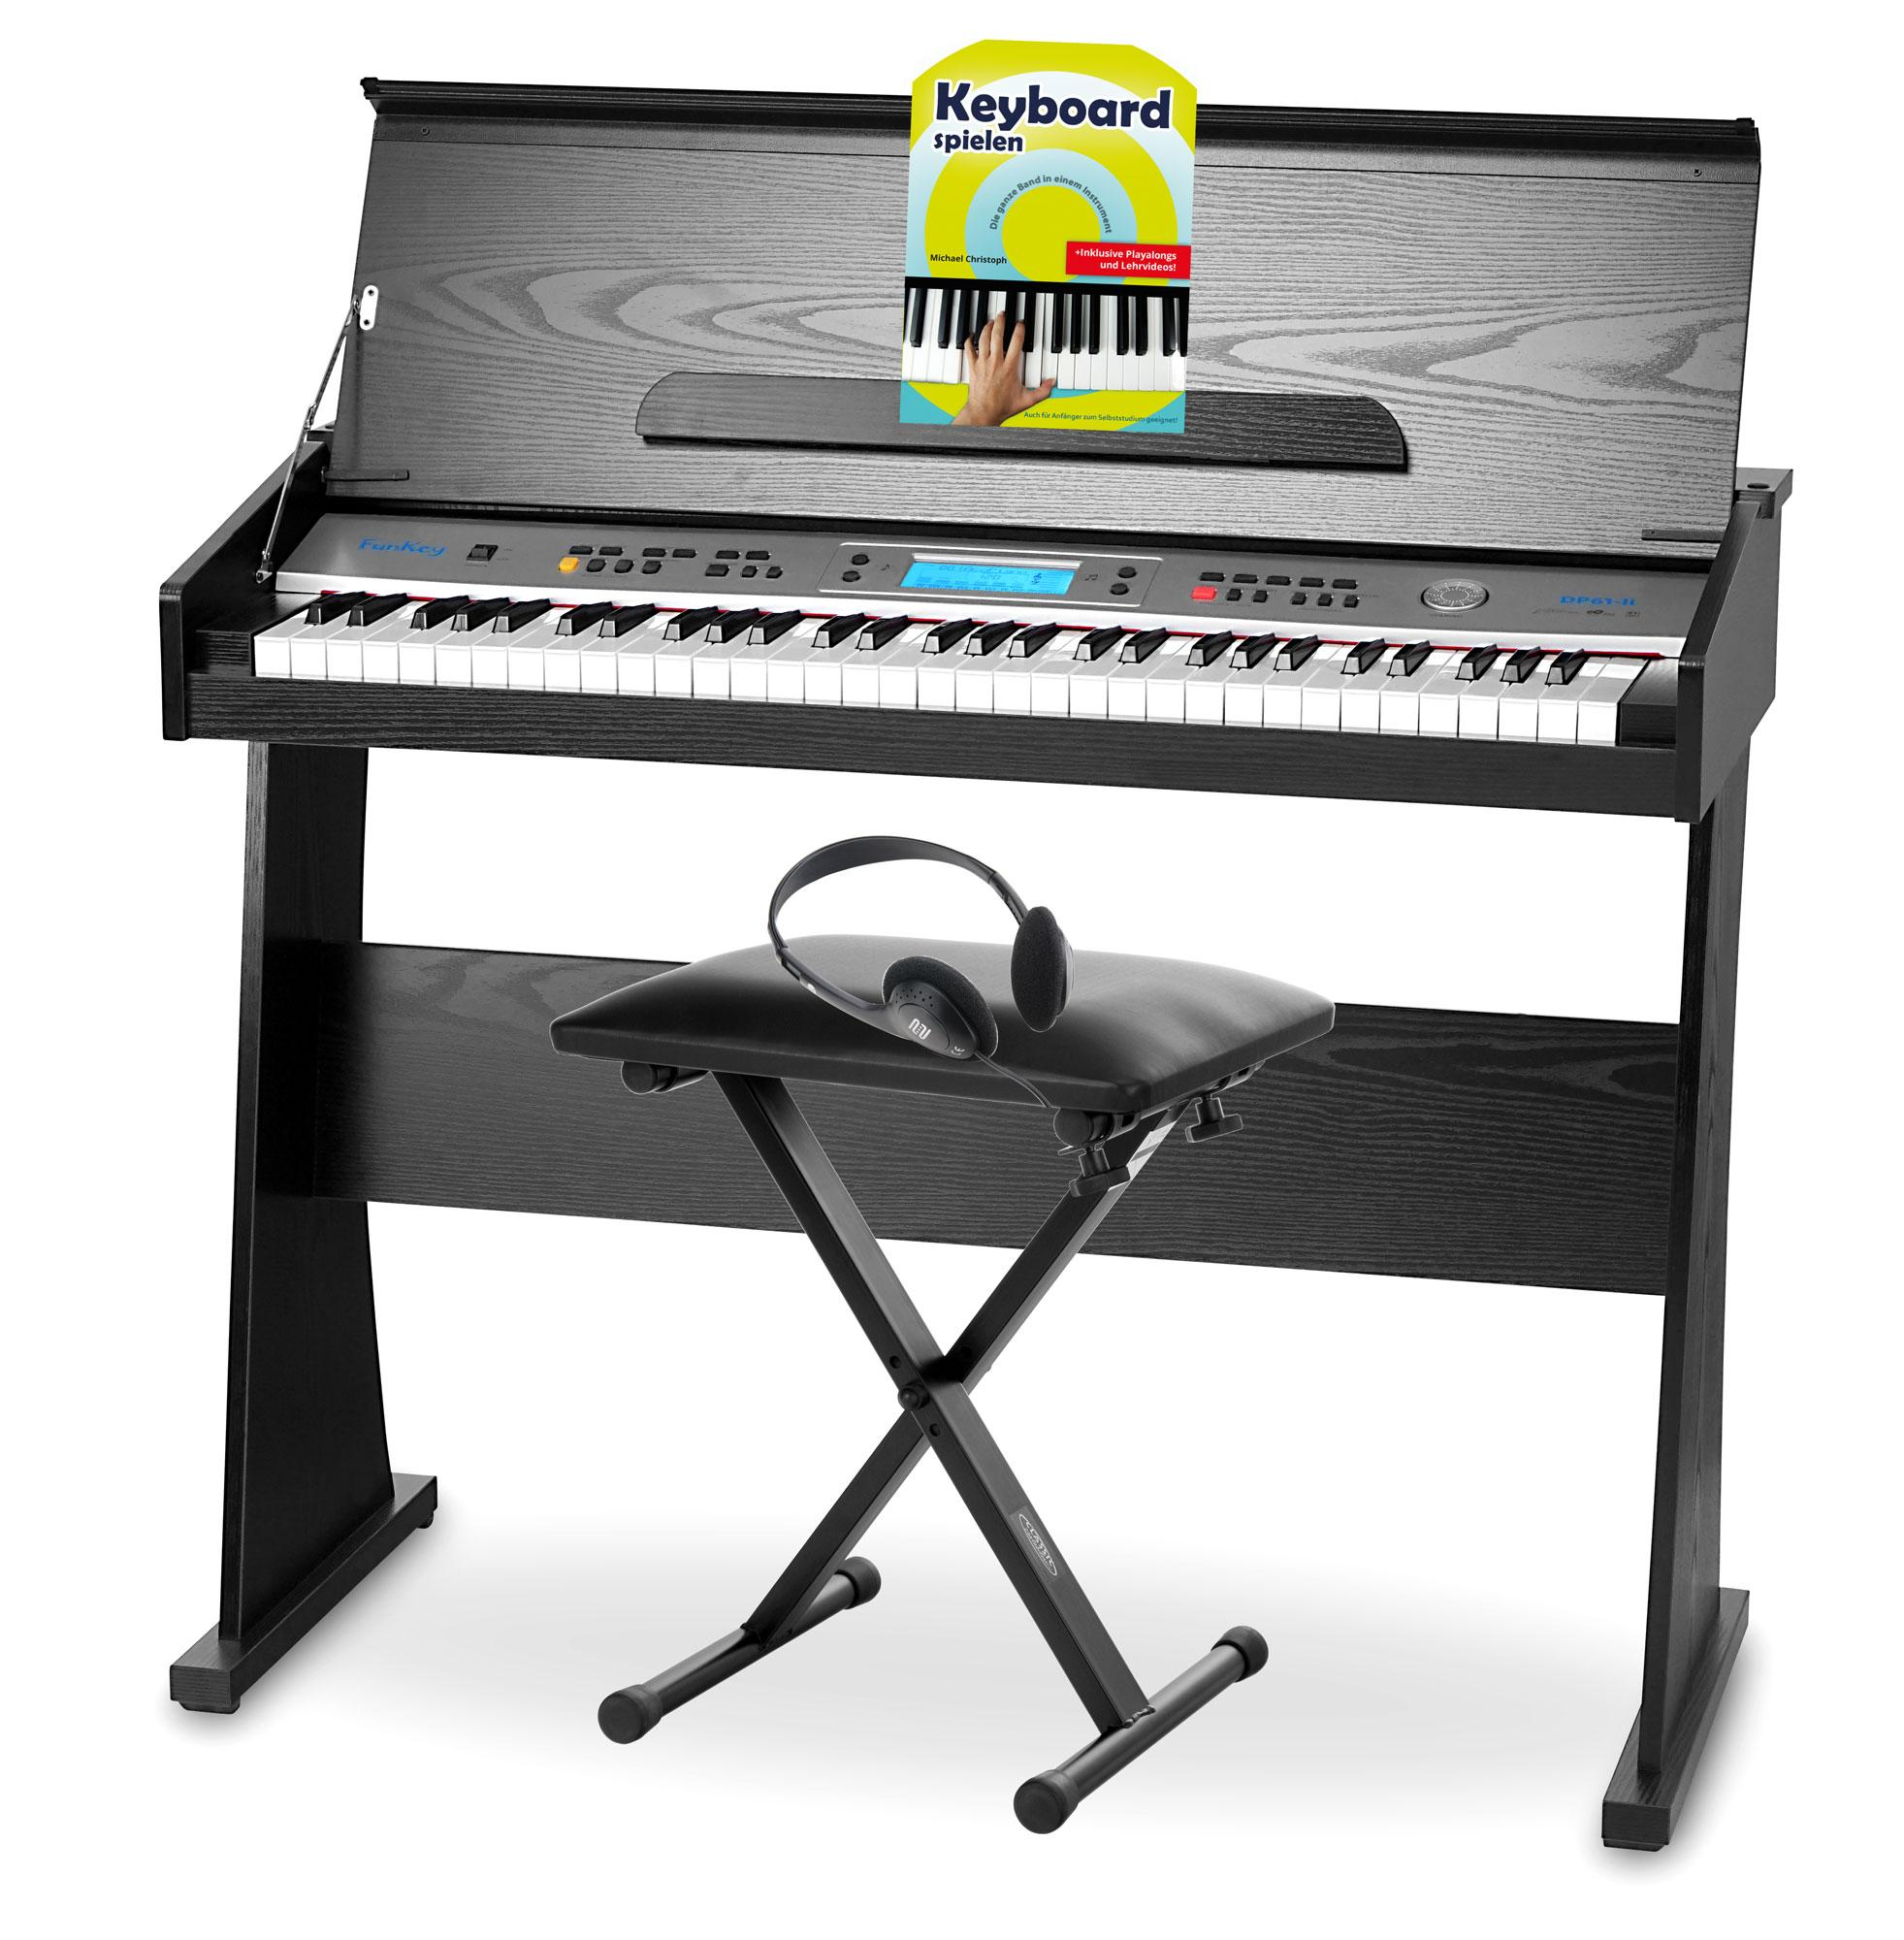 Homekeyboards - FunKey DP 61 II Keyboard mit 61 Tasten im Digitalpiano Design Set - Onlineshop Musikhaus Kirstein